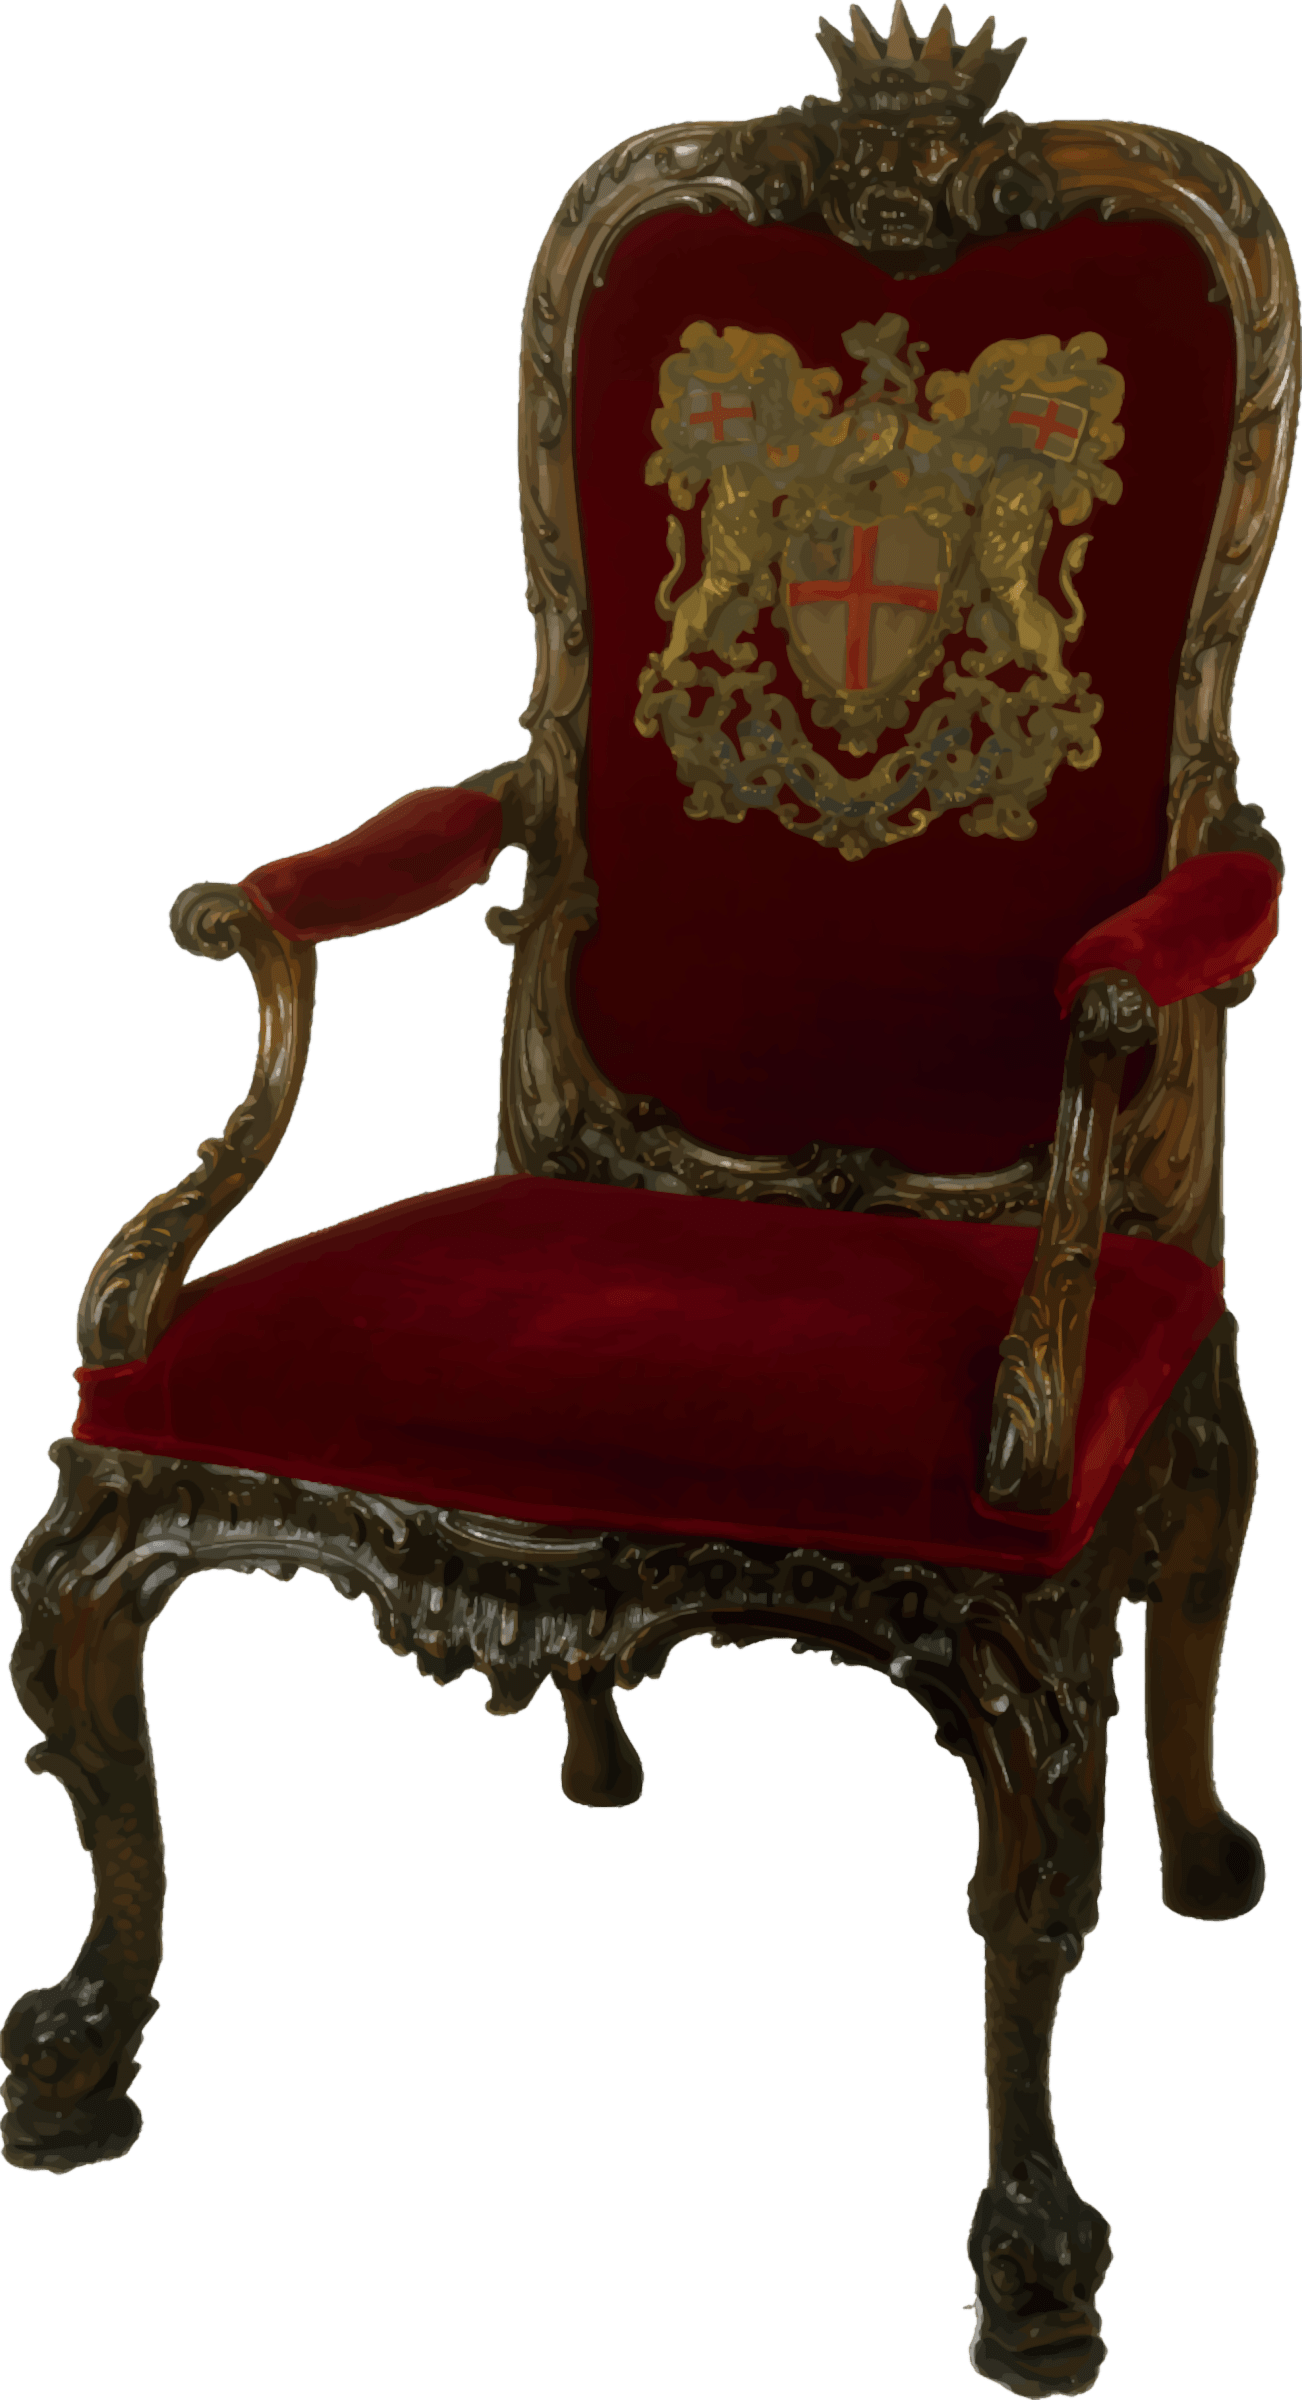 office chair png gaming chairs xbox one clipart ornate walnut